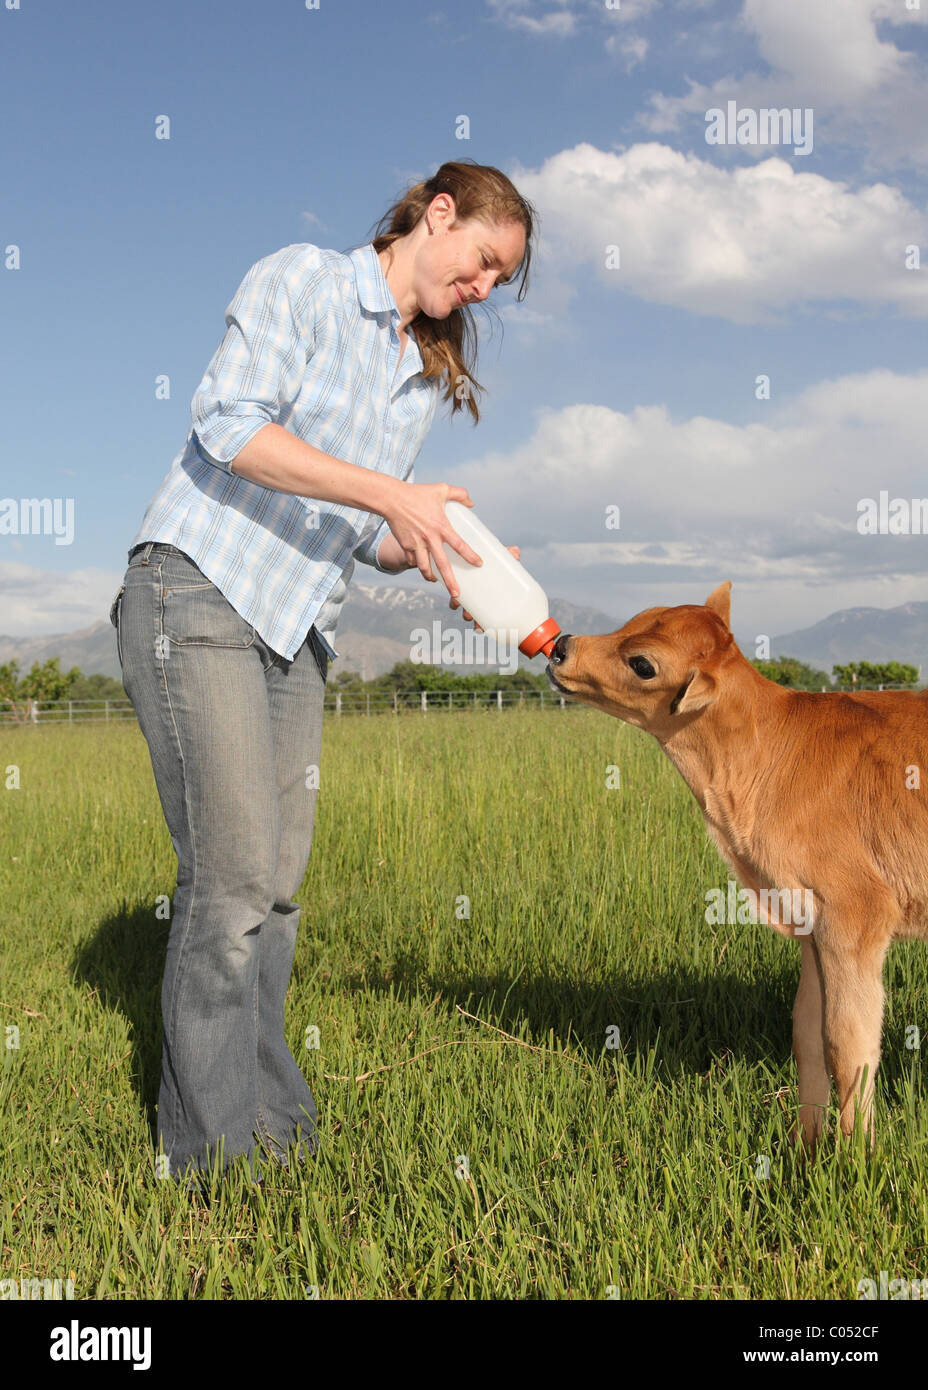 woman in her thirties feeding bottle to baby calf - Stock Image